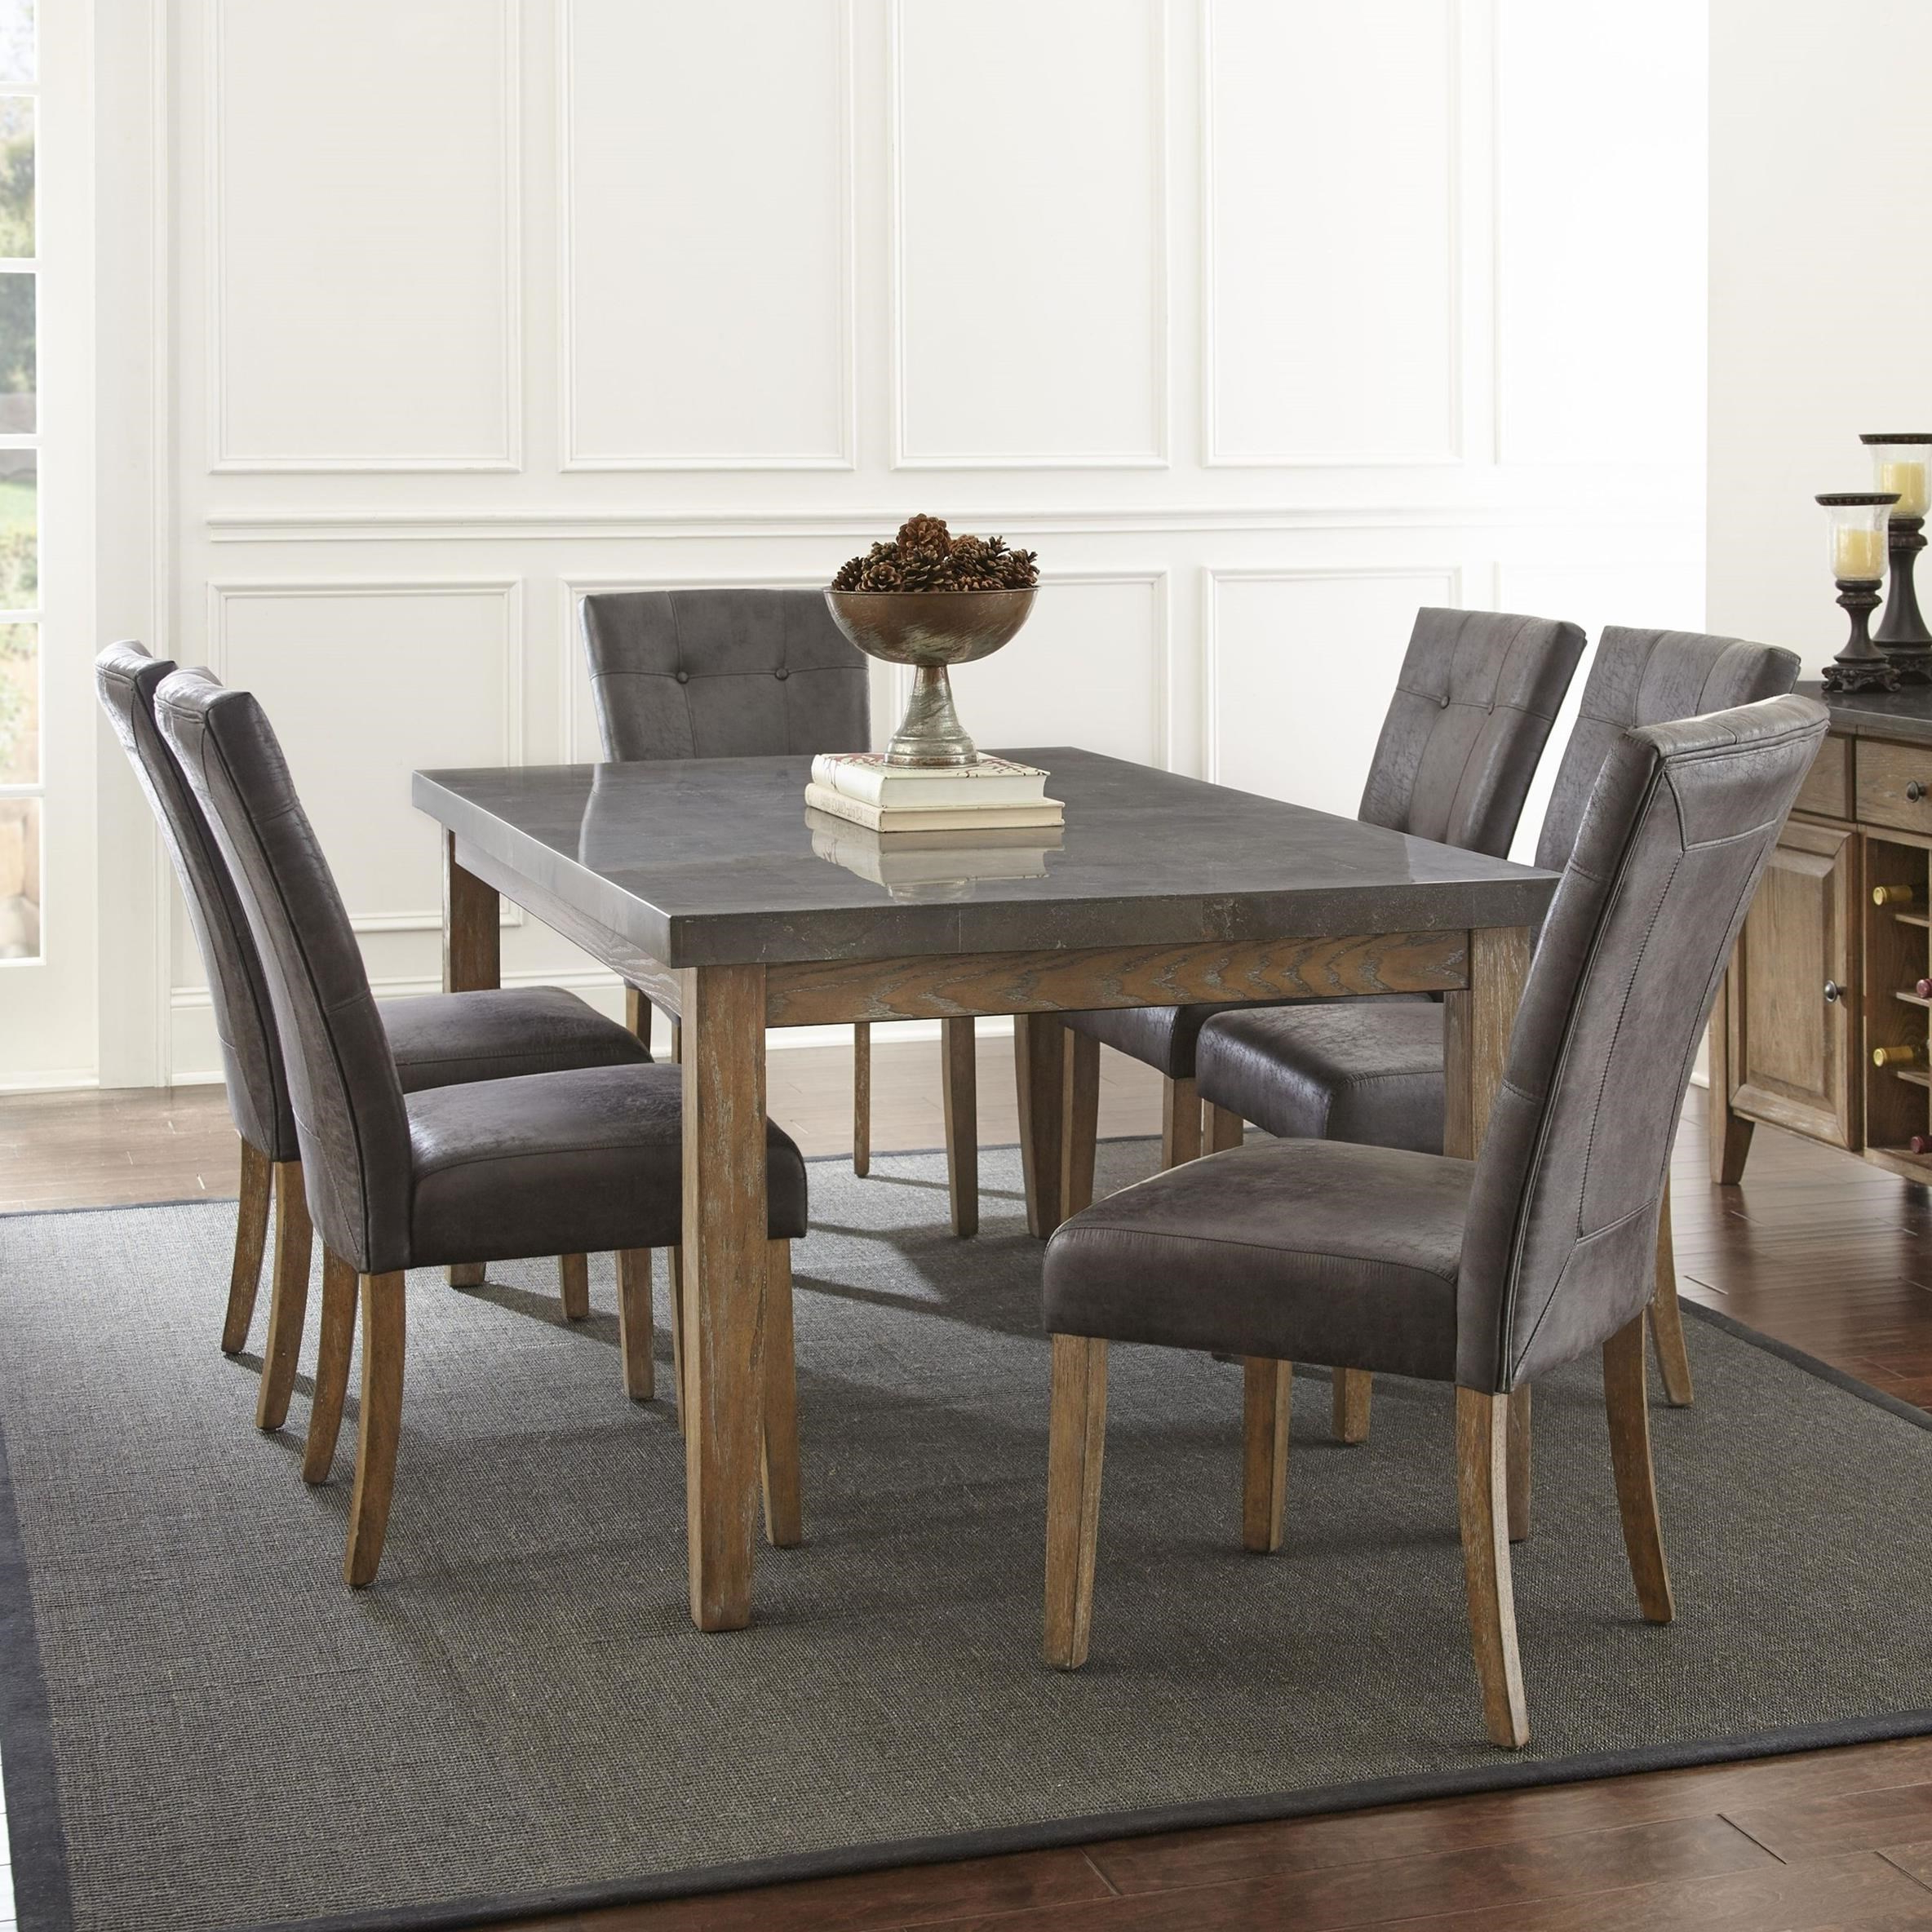 Best And Newest Debby Small Space 3 Piece Dining Sets With Debby 7 Piece Transitional Table And Chair Set With Bluestone Topsteve Silver At Wayside Furniture (View 19 of 25)